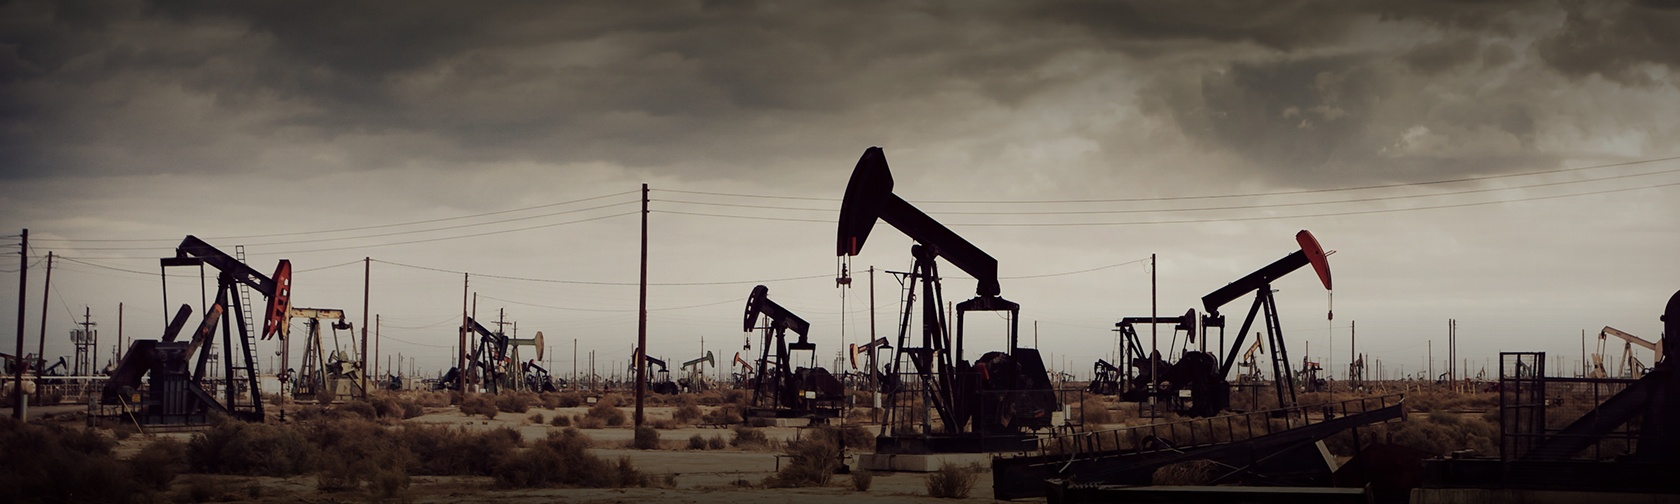 oil and gas injury attorney